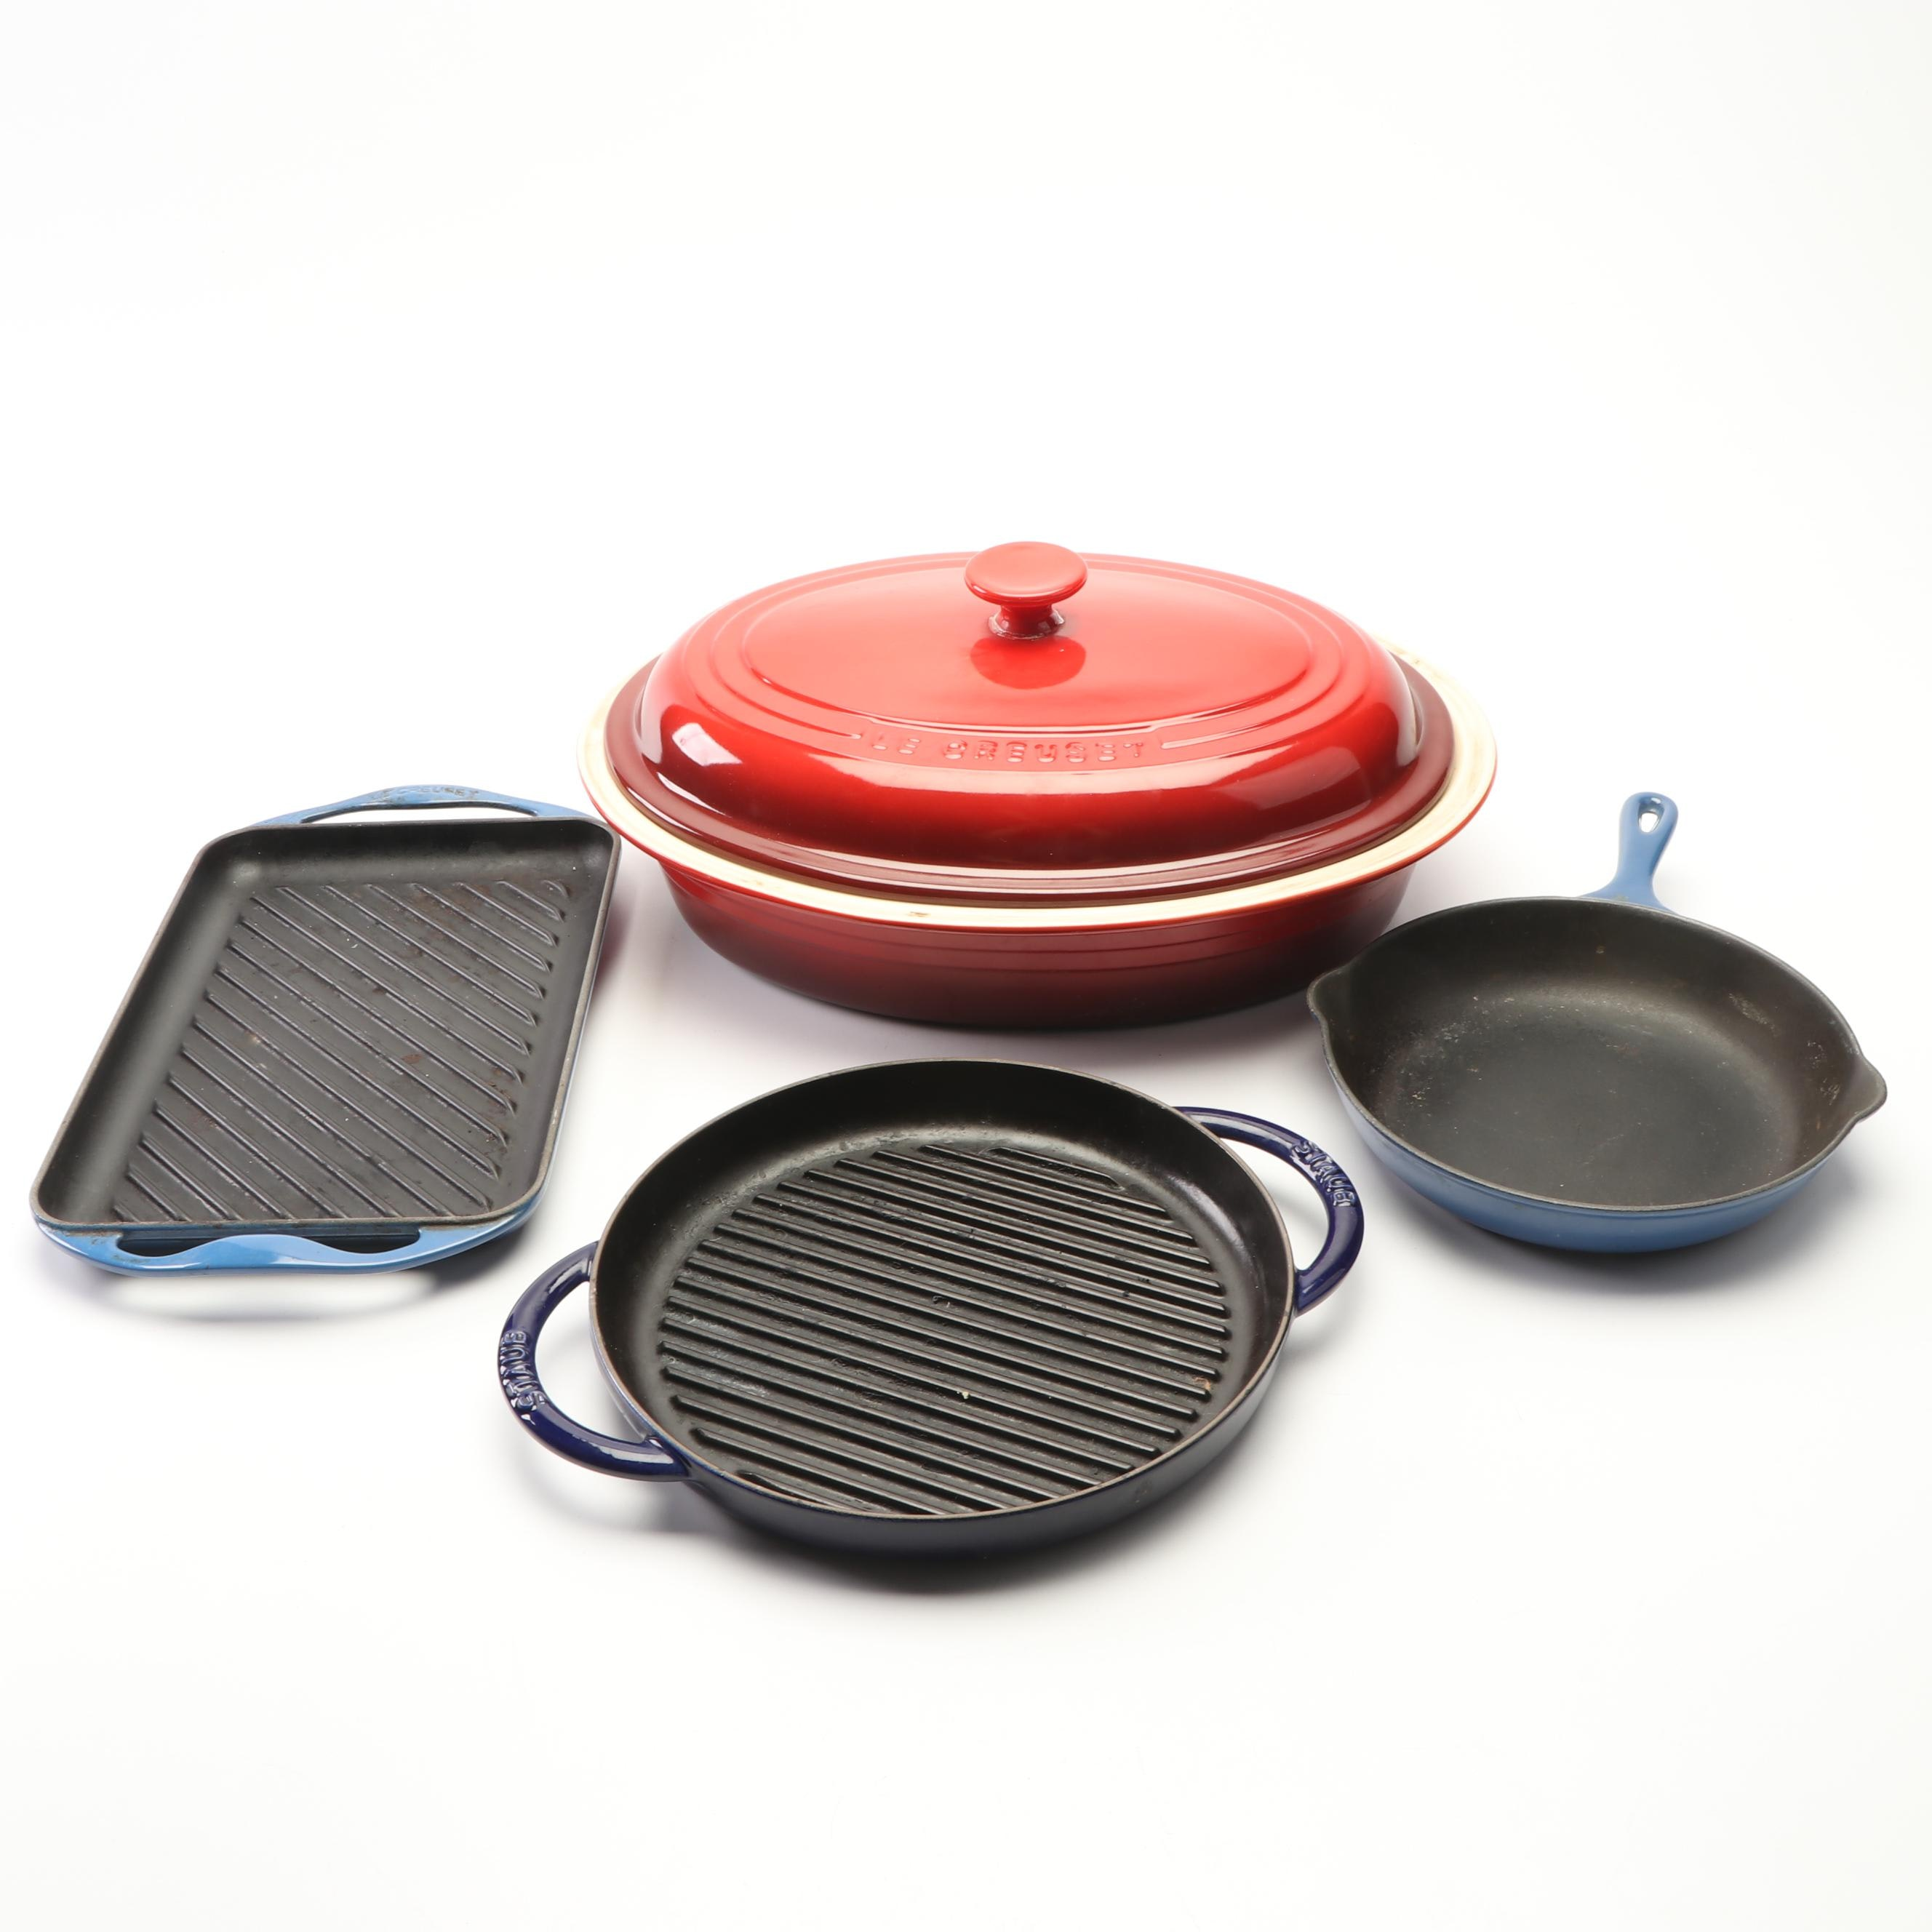 Le Creuset and Staub Enameled Cookware